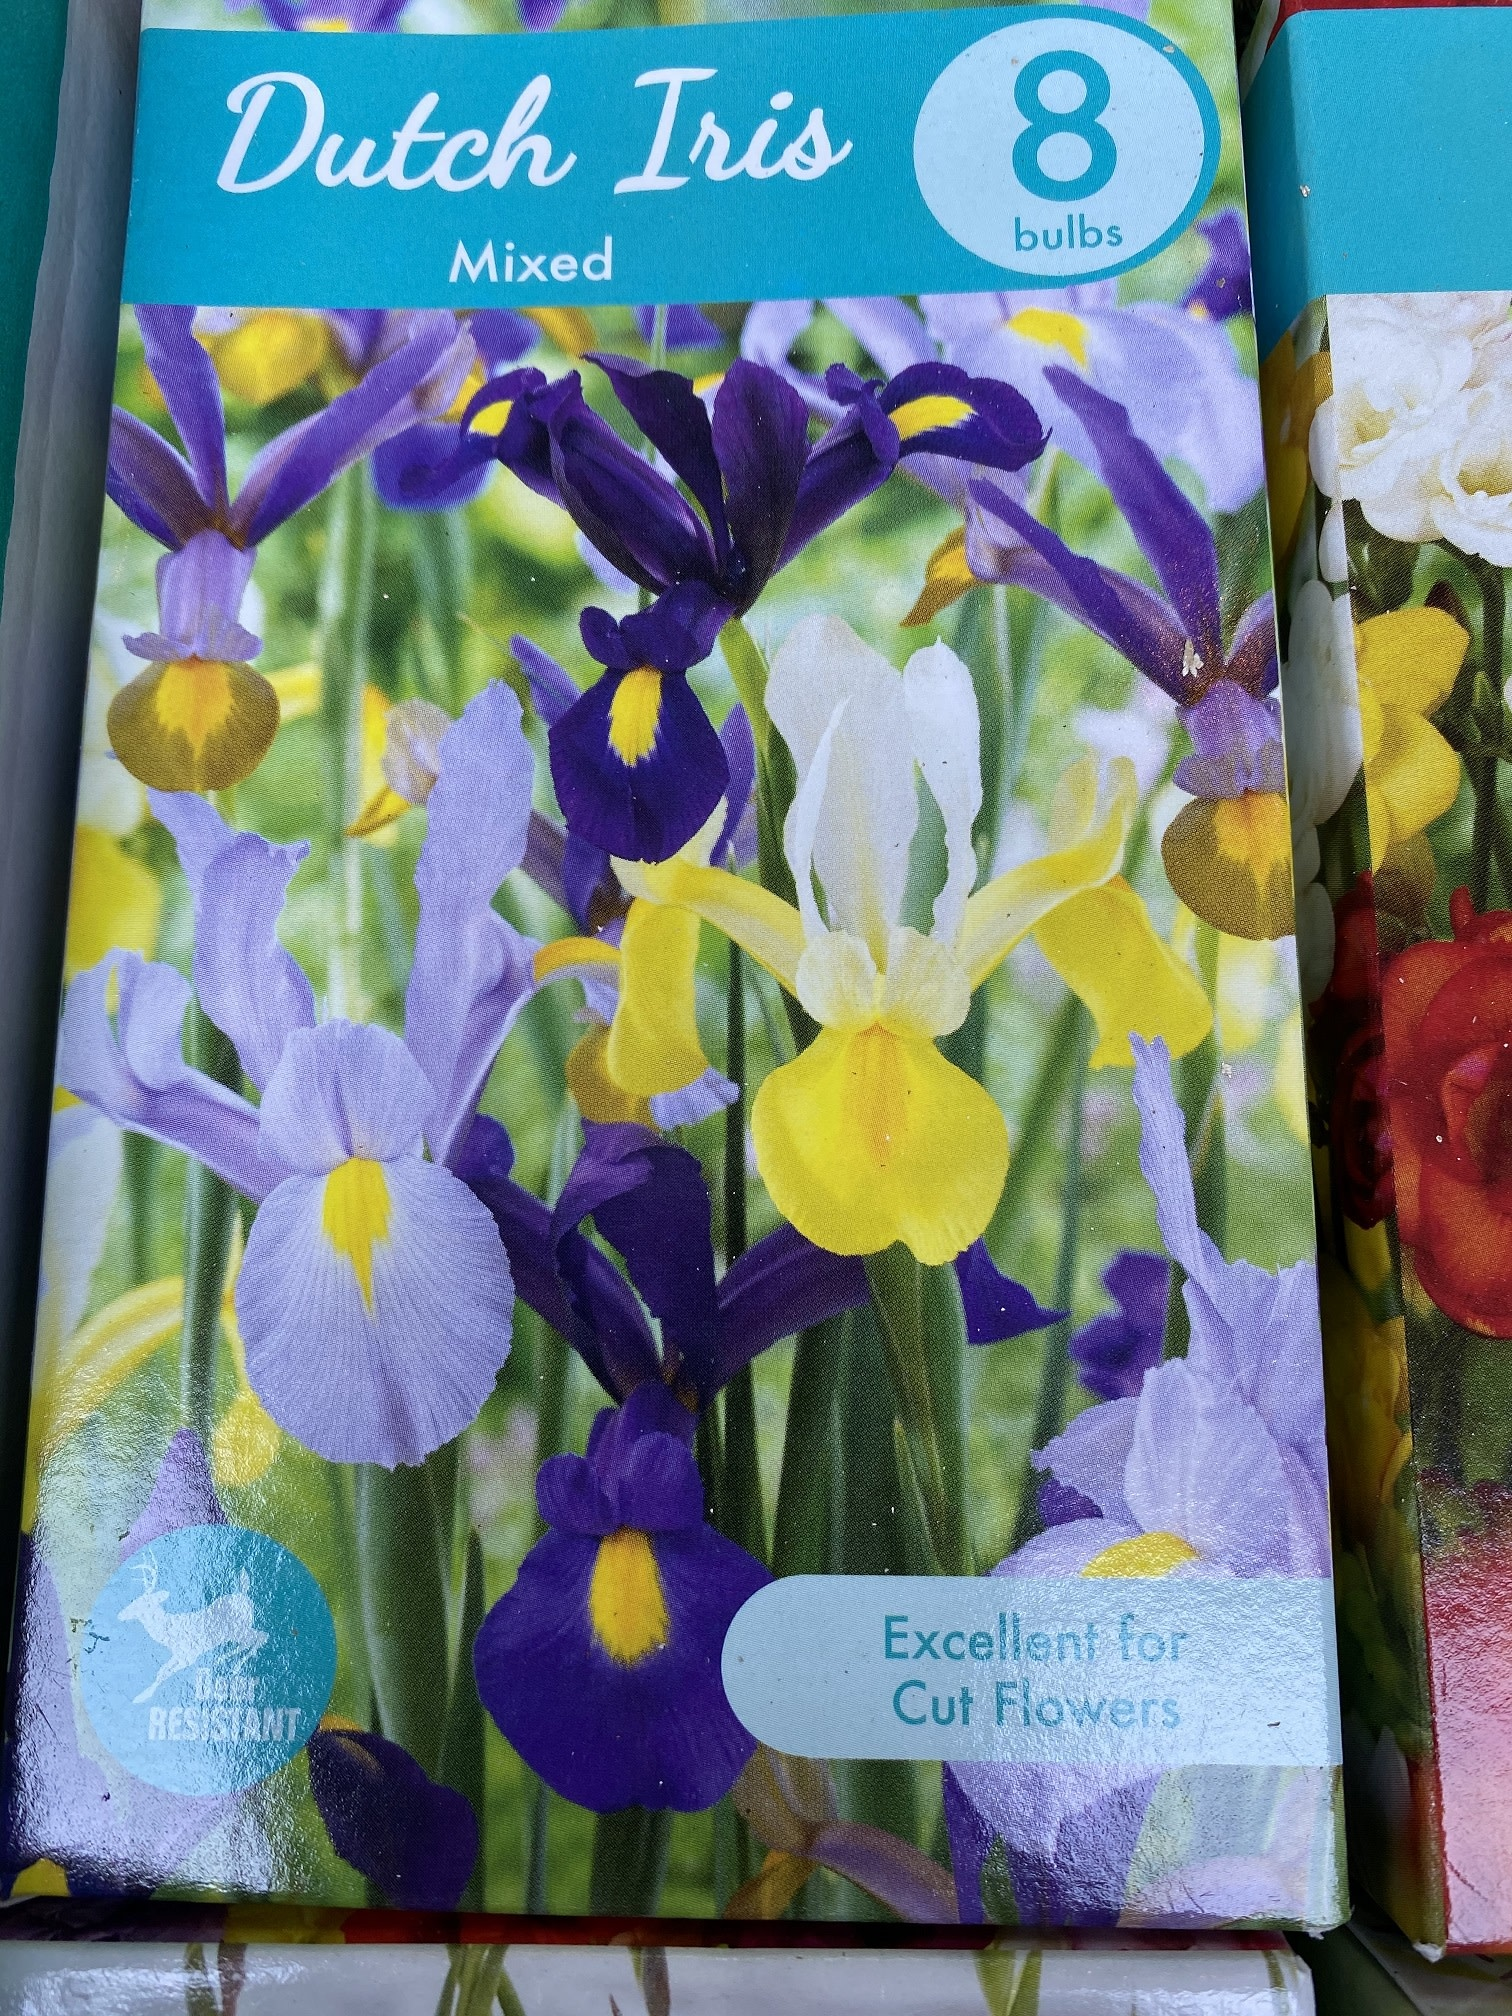 Iris Hollandica, Dutch Iris Mixed 8 boxed bulbs